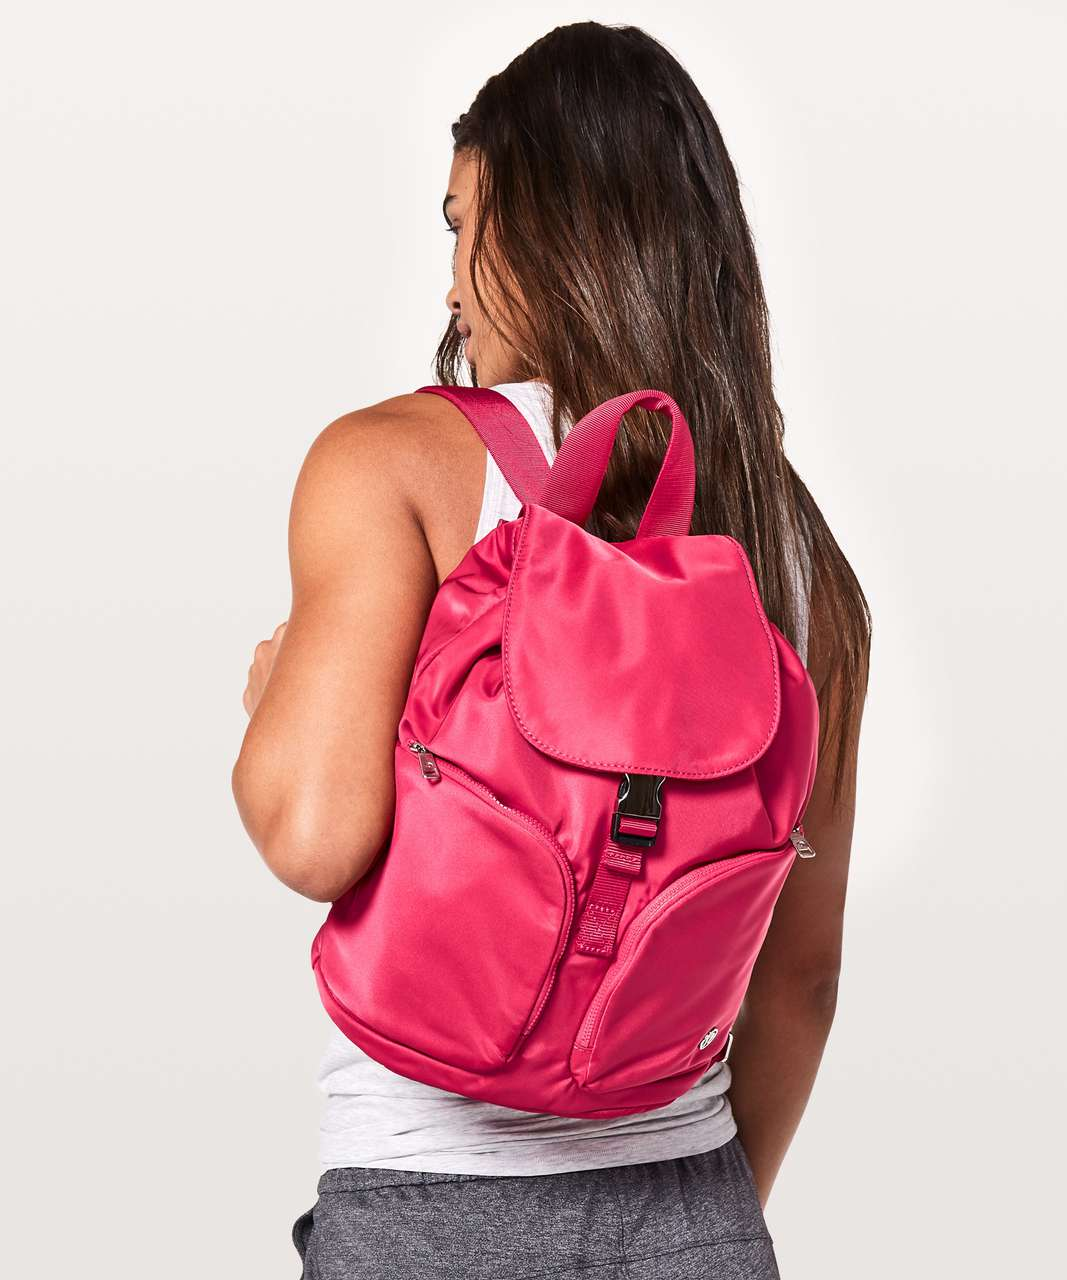 Lululemon Carry Onward Rucksack Mini *9L - Fuchsia Pink